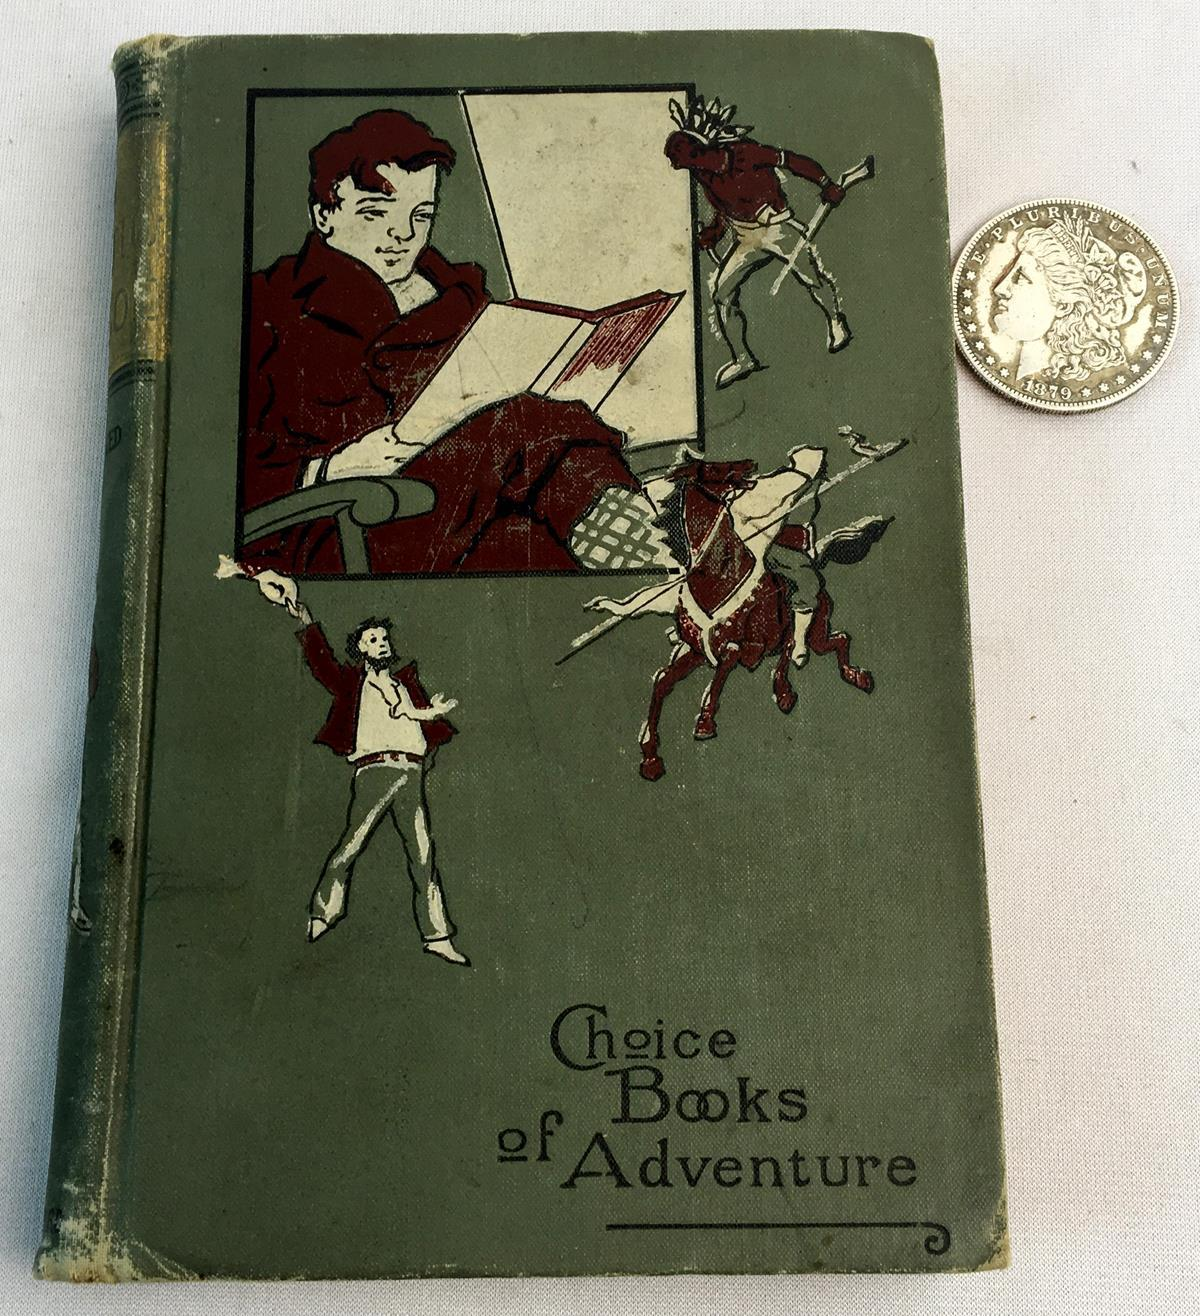 The Arctic Crusoe: A Tale of The Polar Sea or Arctic Adventures on The Sea of Ice by Percy B. St. John ILLUSTRATED c. 1890